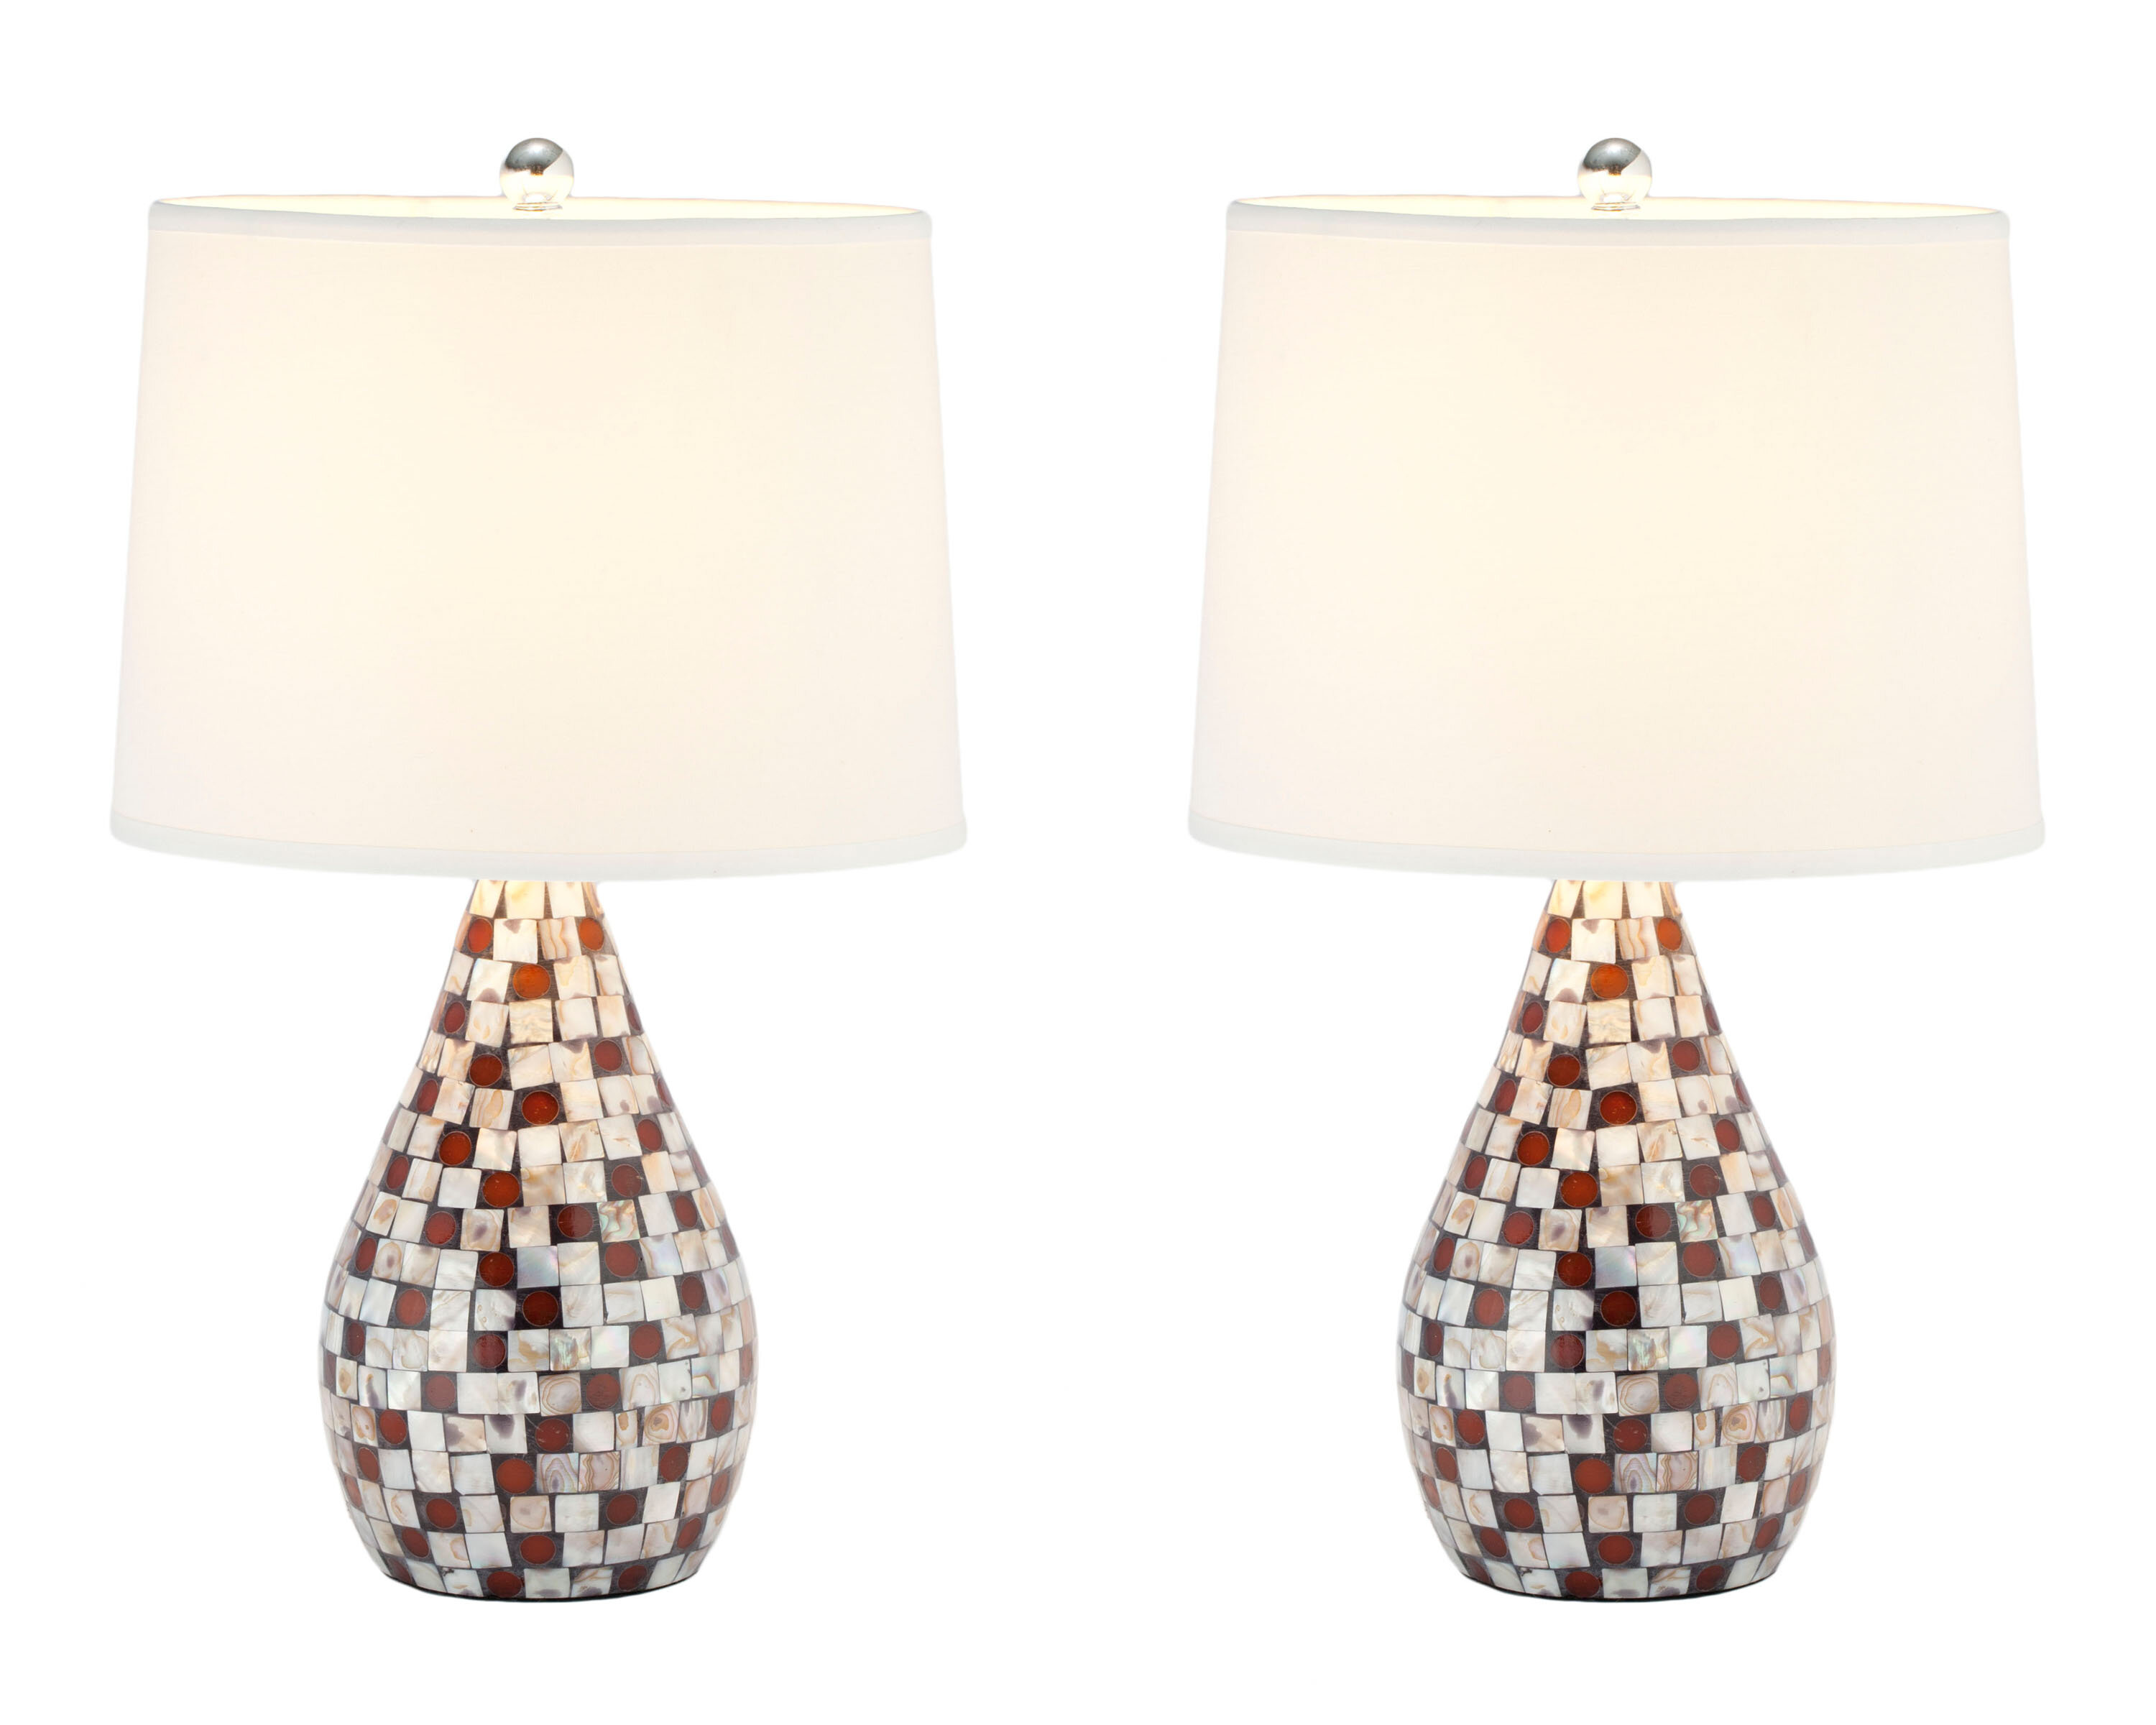 Safavieh mother of pearl 1925 table lamp reviews wayfair aloadofball Image collections